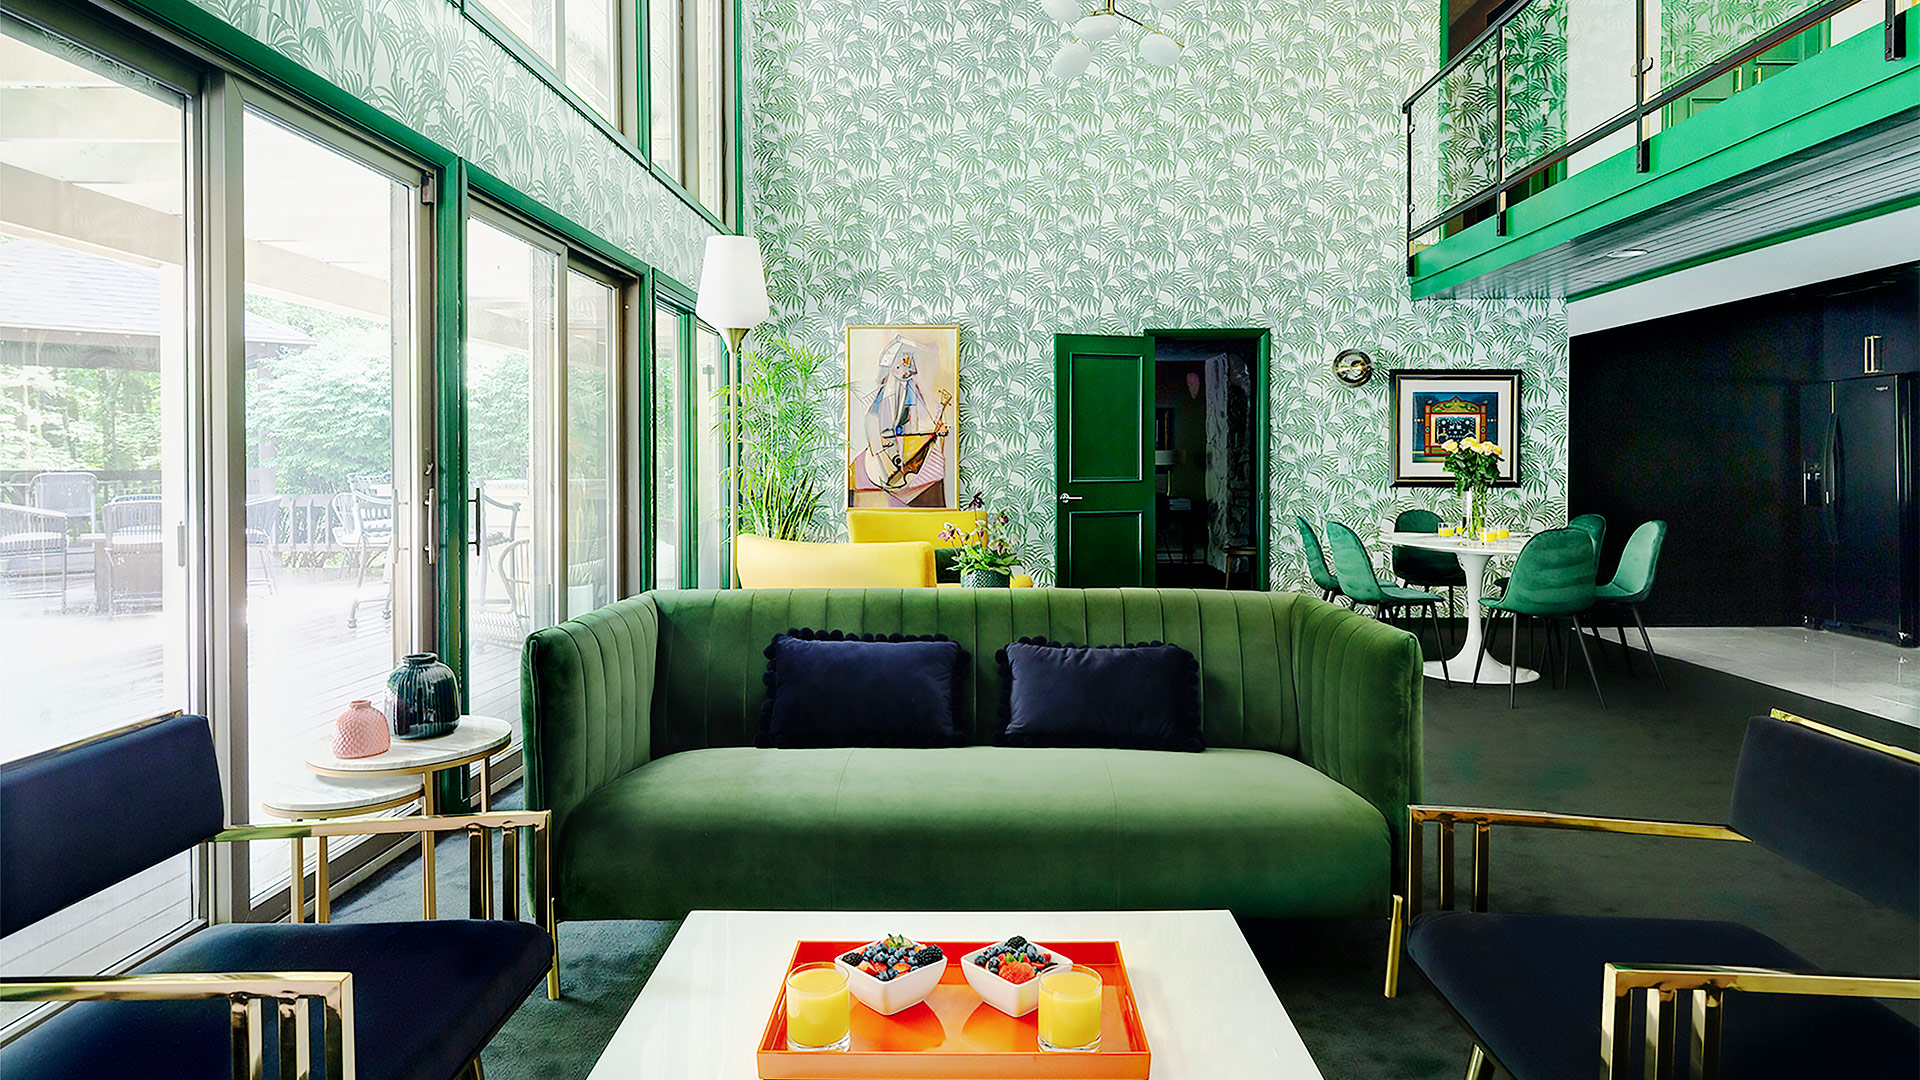 an interior shot of grouse glen's living area. The space has a stunning emerald green theme. The couch is velvet and there is patterned wallpaper in the background. Art dots the room bringing in accents of orange, red and yellow